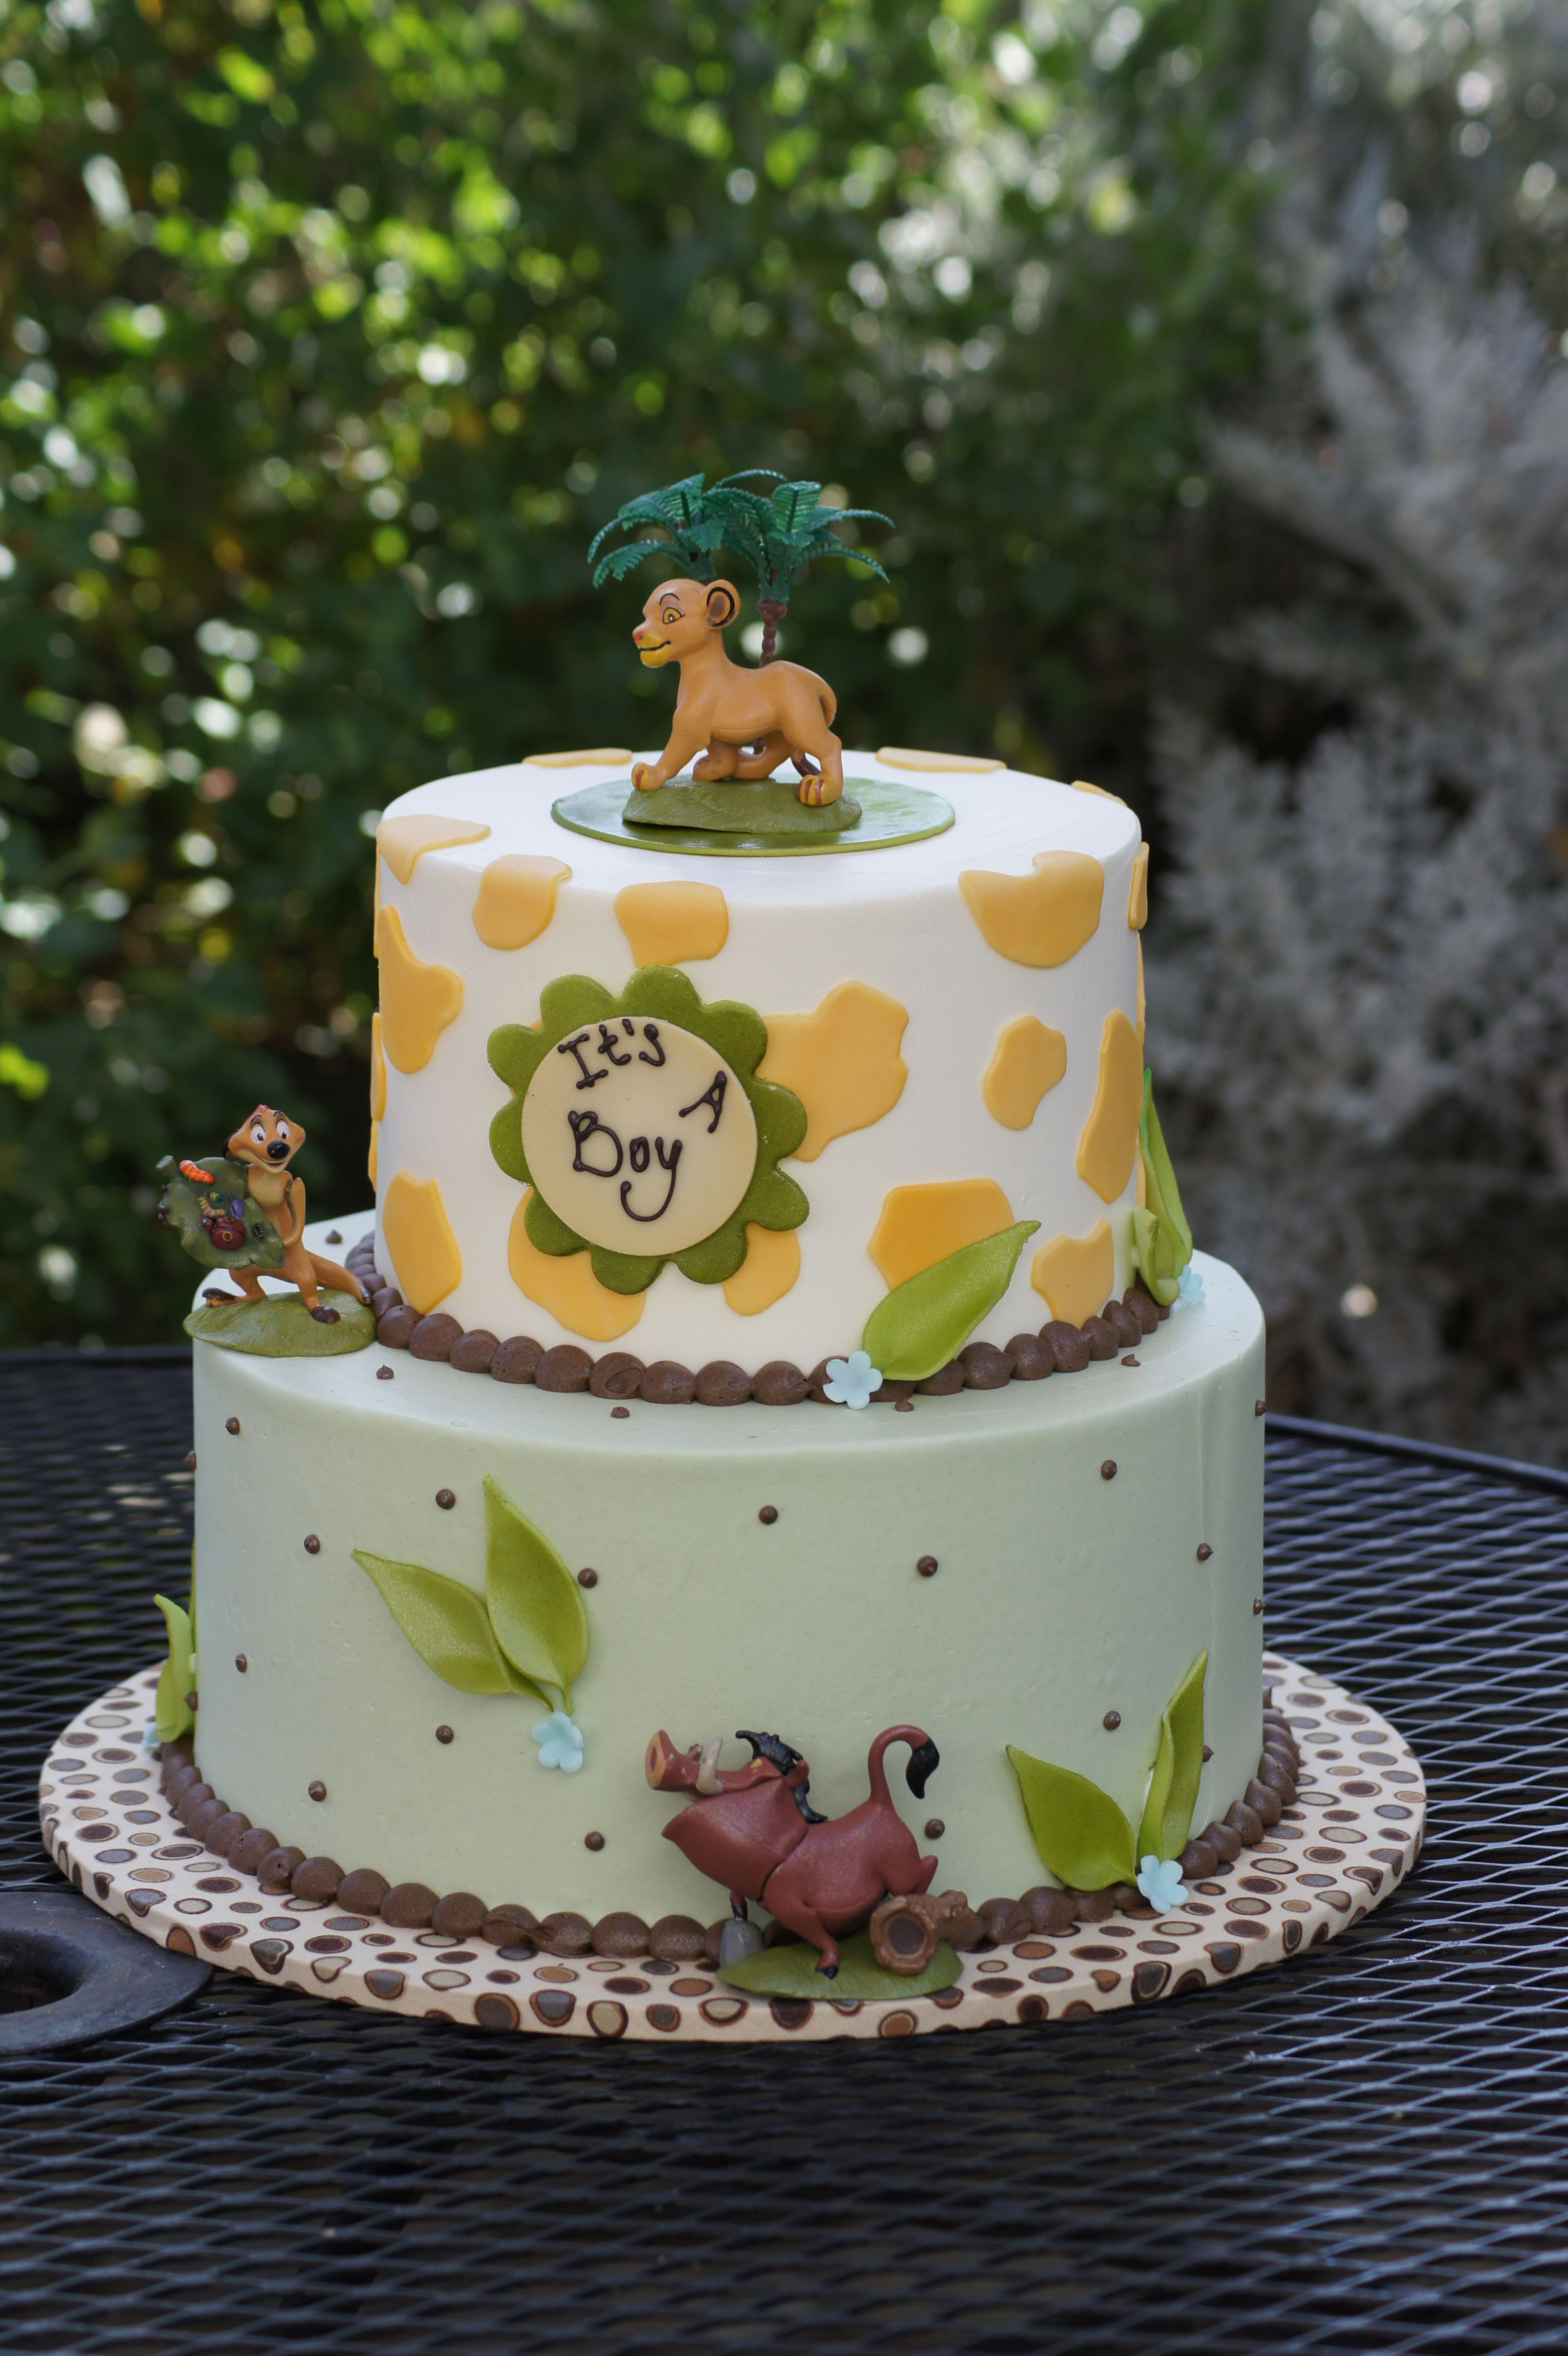 Lion King Baby Shower Cake Decorations  from i.pinimg.com